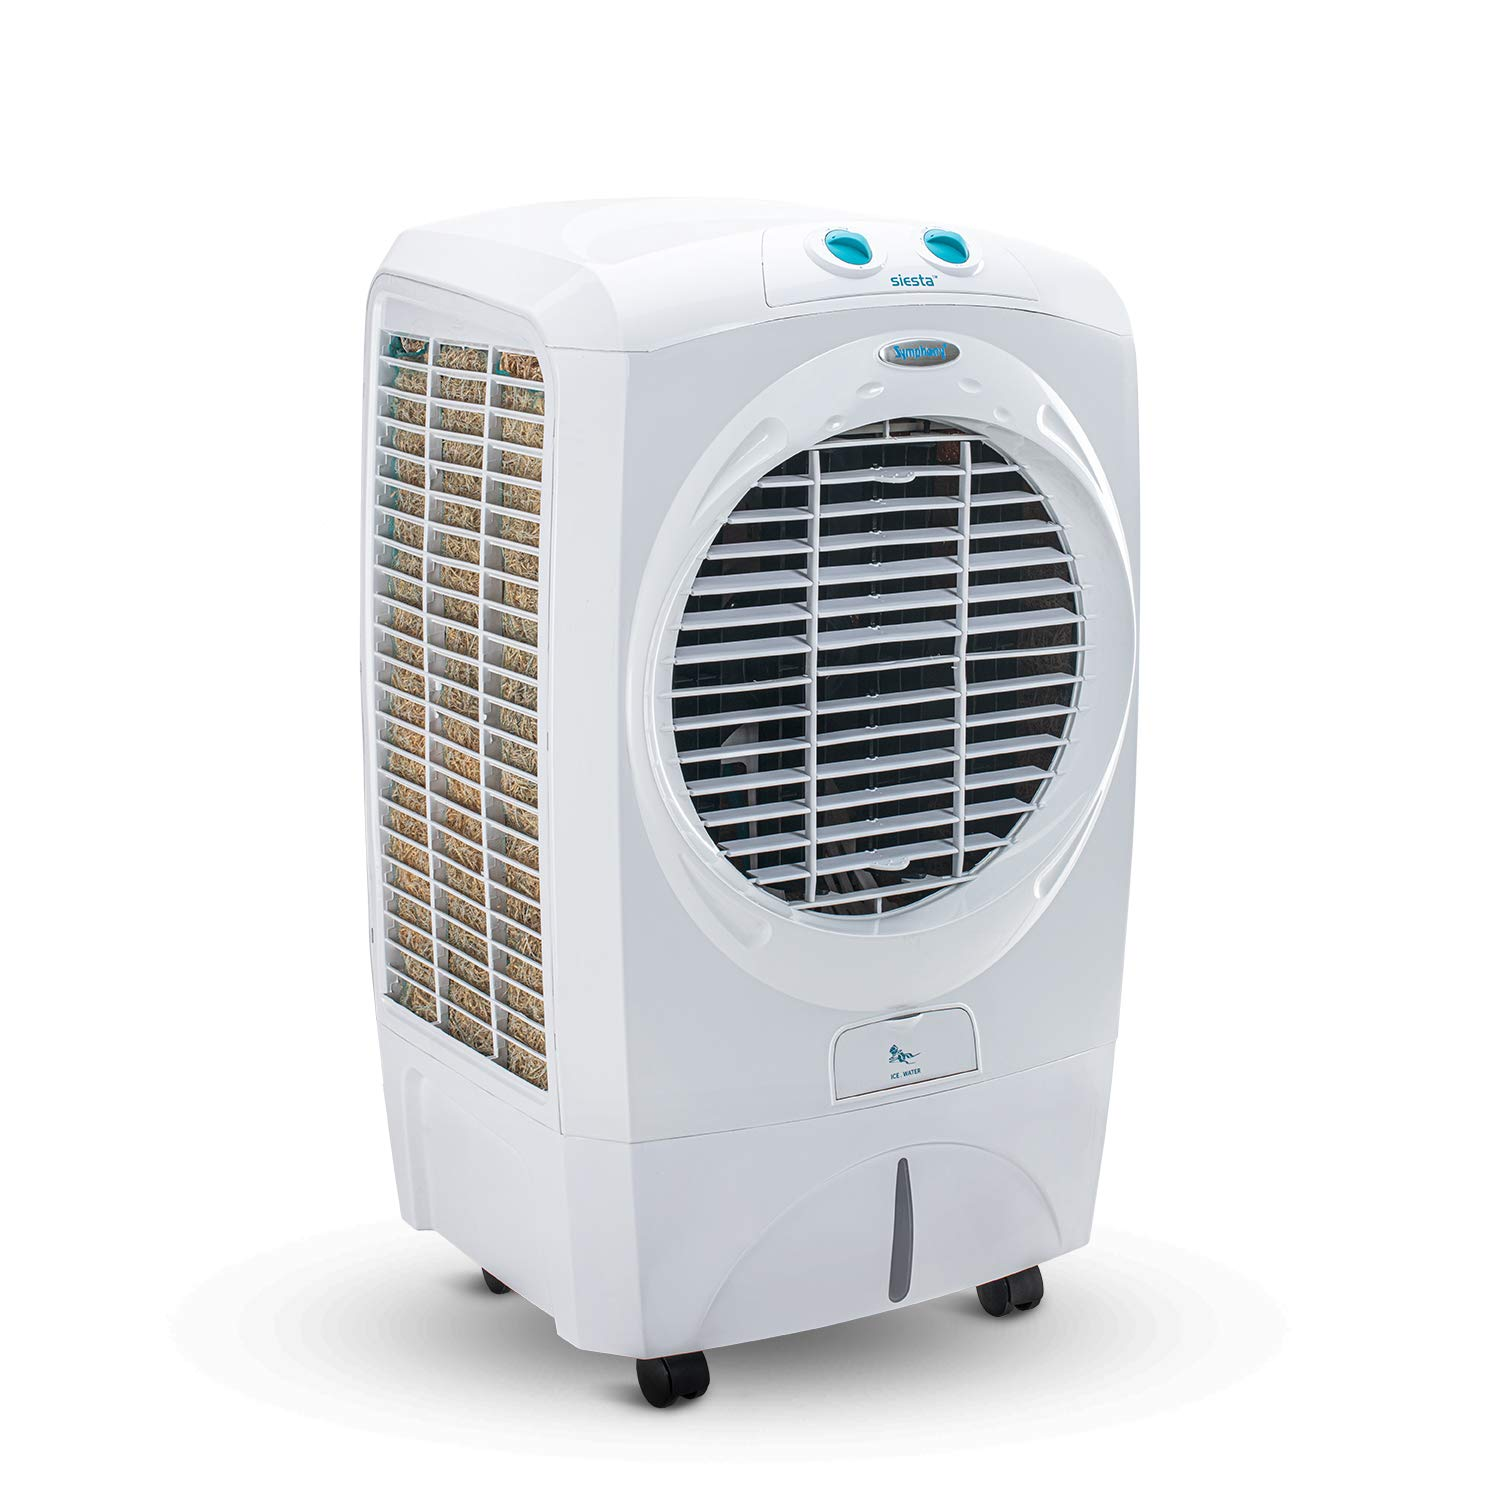 Symphony Siesta 45 Desert Air Cooler - 45-litres, White : Amazon.in: Home &  Kitchen